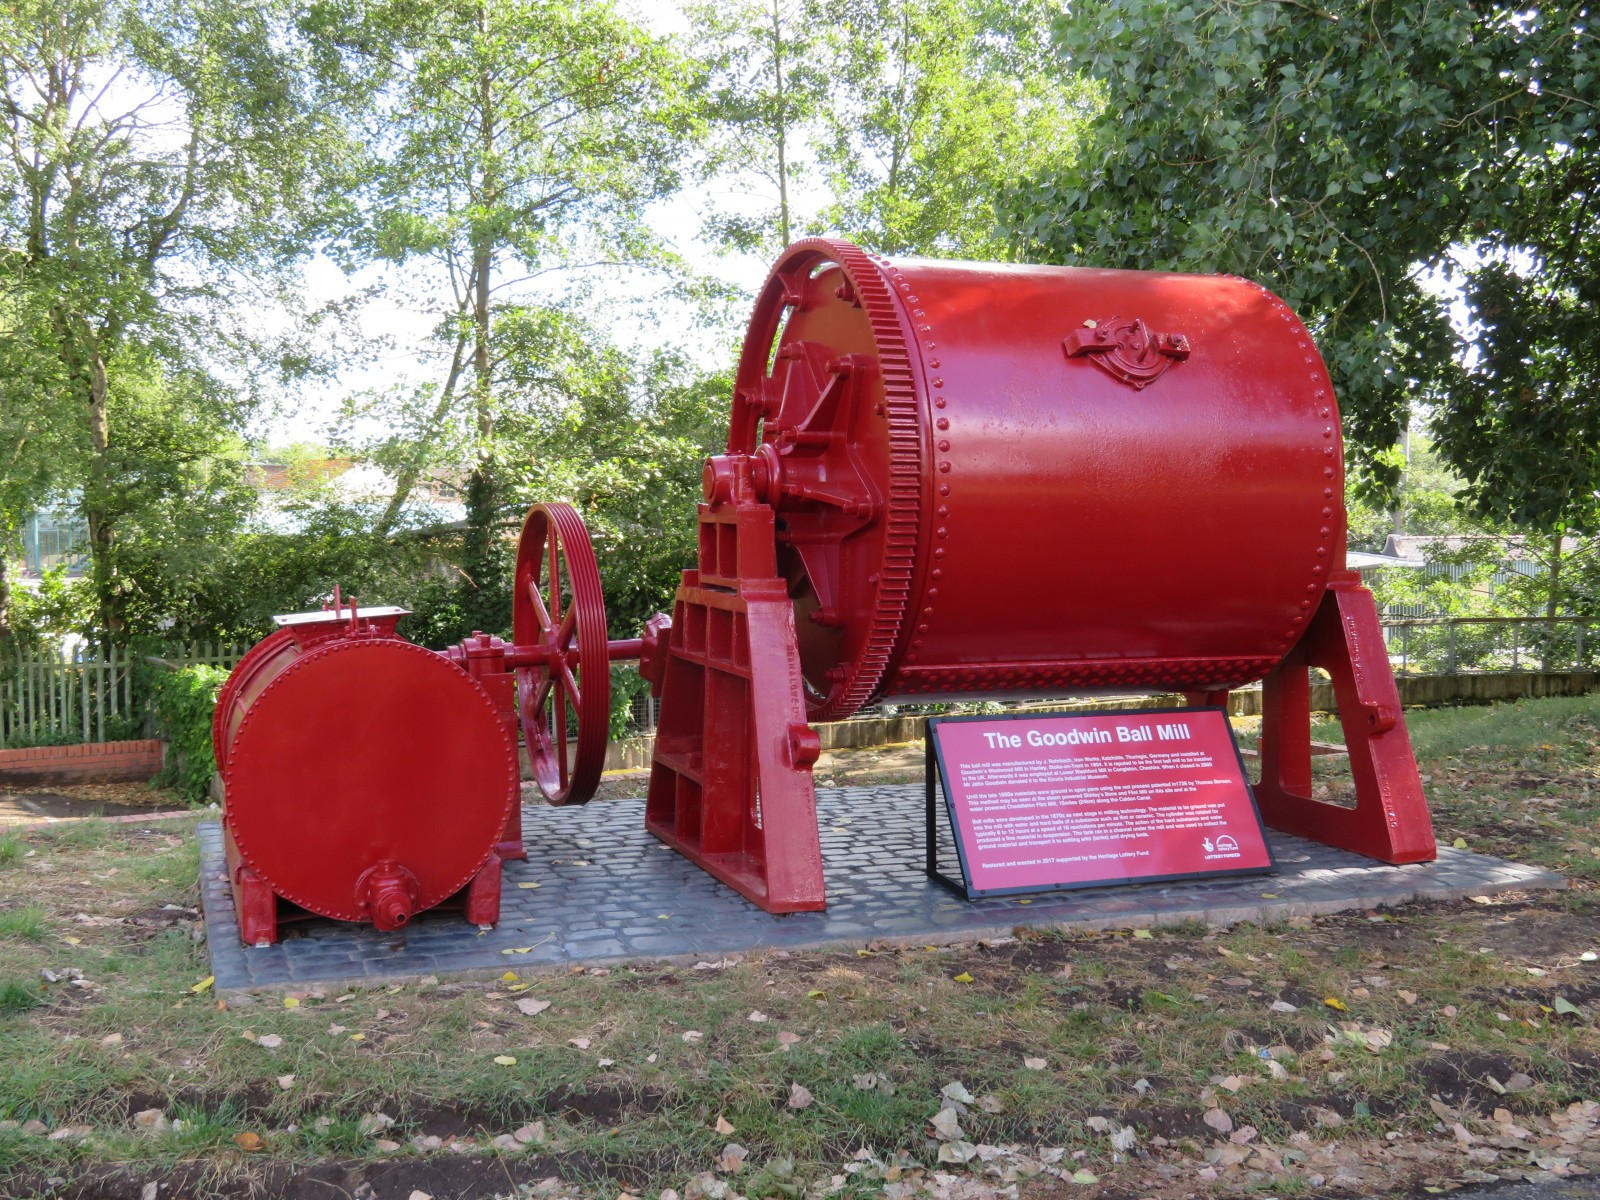 GOODWIN 1904 BALL MILL RESTORED AND ERECTED BY THE CALDON CANAL